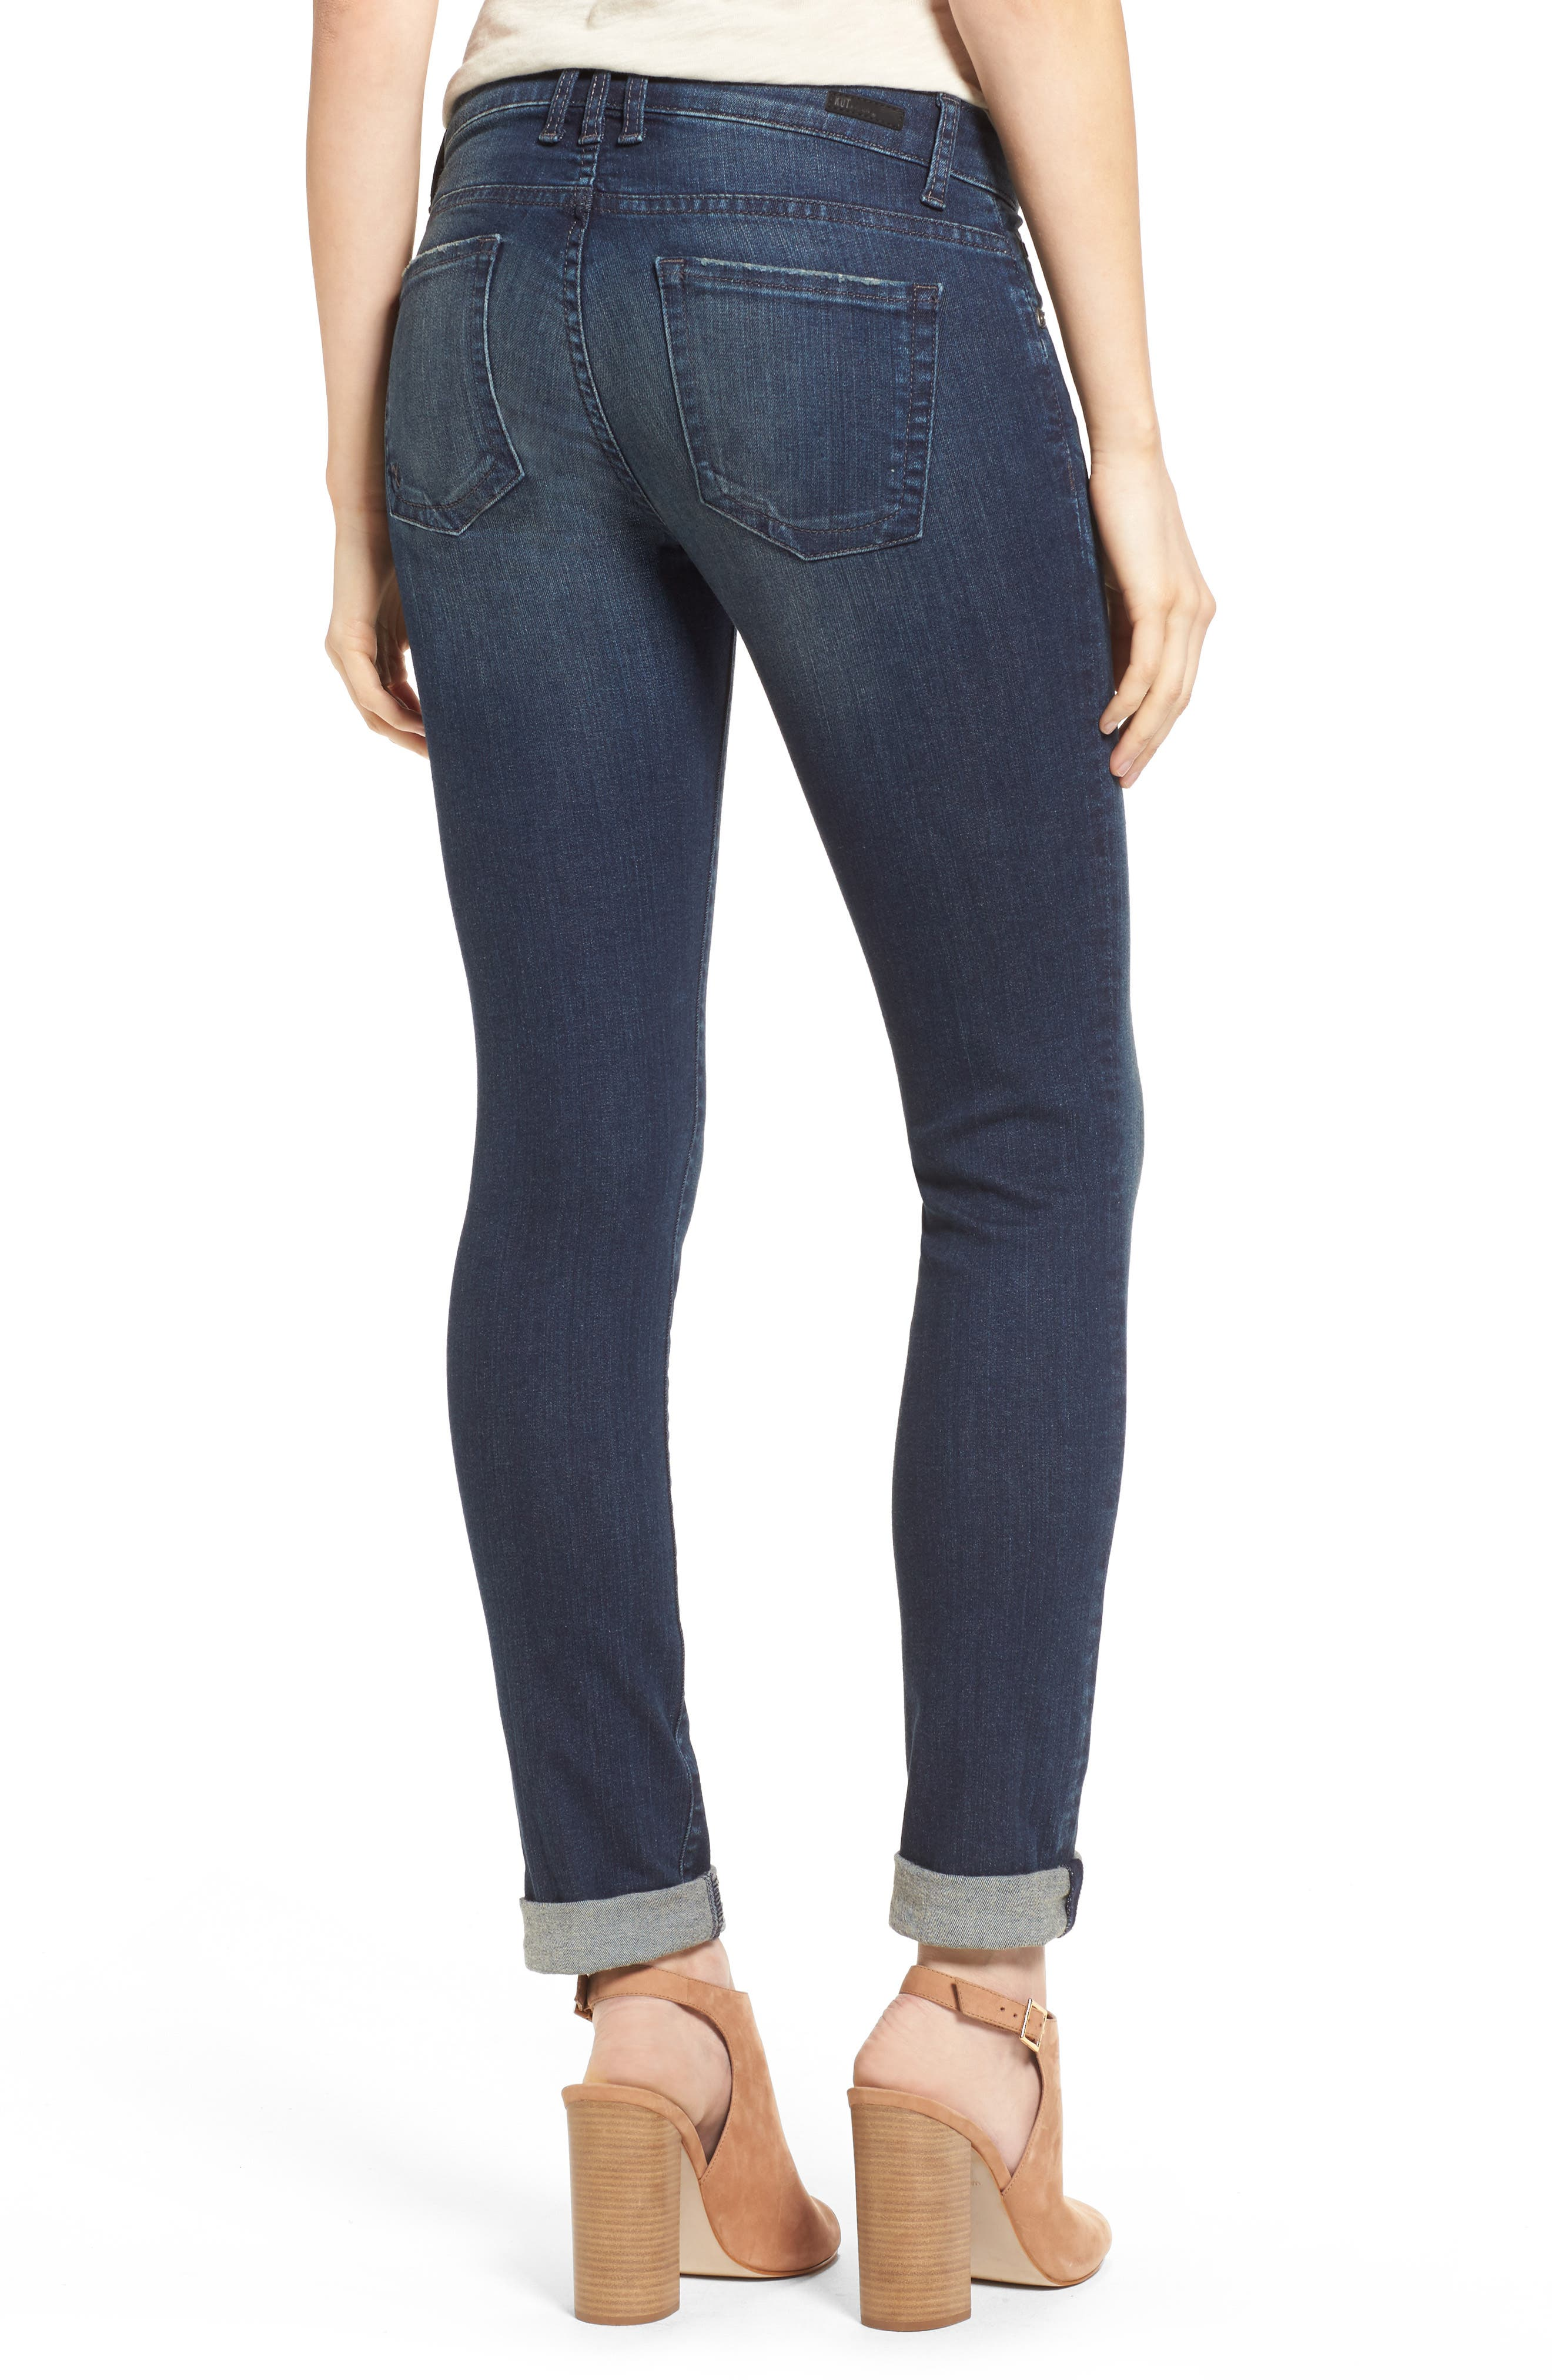 KUT FROM THE KLOTH, 'Catherine' Slim Boyfriend Jeans, Main thumbnail 1, color, CAREFULNESS